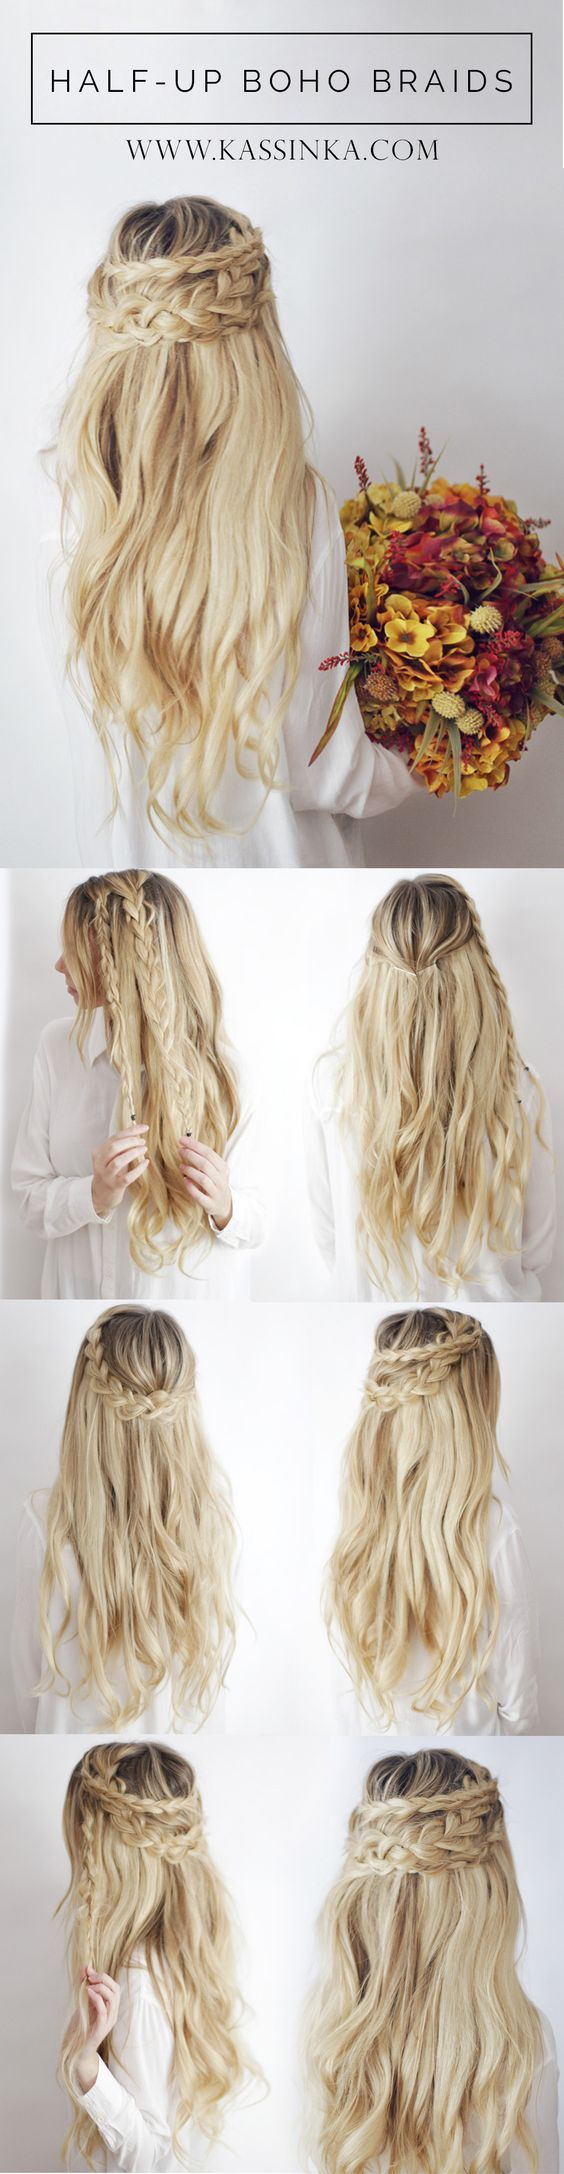 1755 best Wedding Hairstyles images on Pinterest | Bridal hairstyles ...